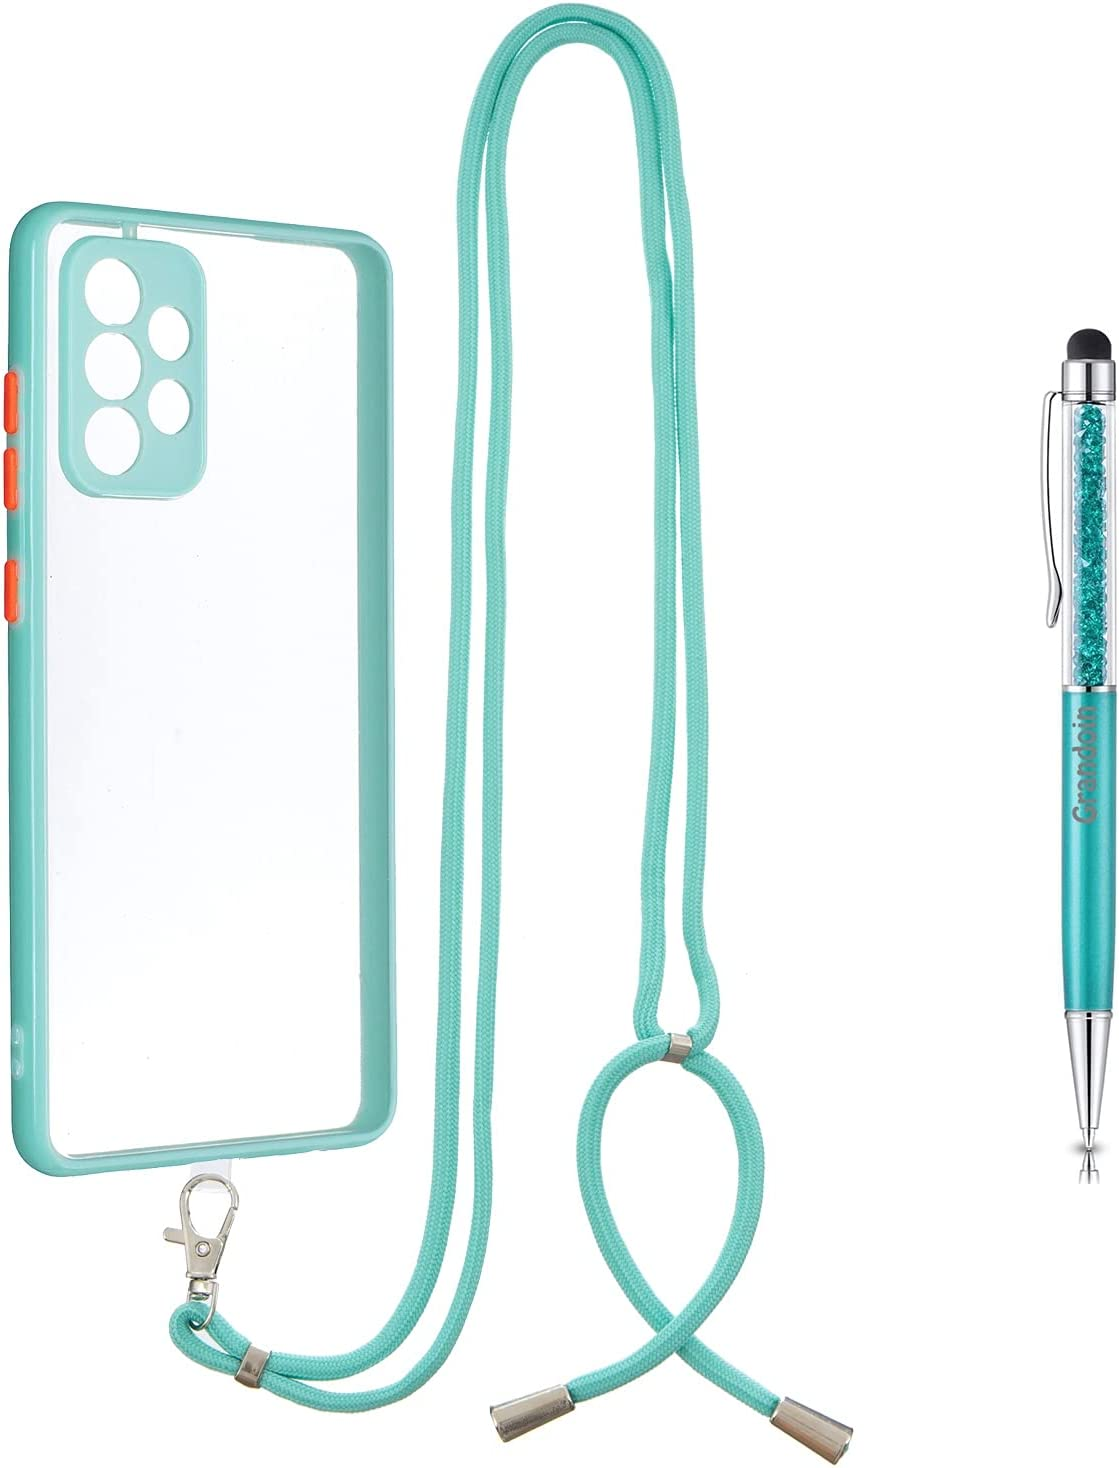 Grandoin Crossbody Case for Samsung Galaxy A72 5G, Lanyard Case Necklace Mobile Phone Cover with Adjustable Cord Strap, Clear Transparent TPU Cover Holder with Neck Cord Lanyard Strap (Green)